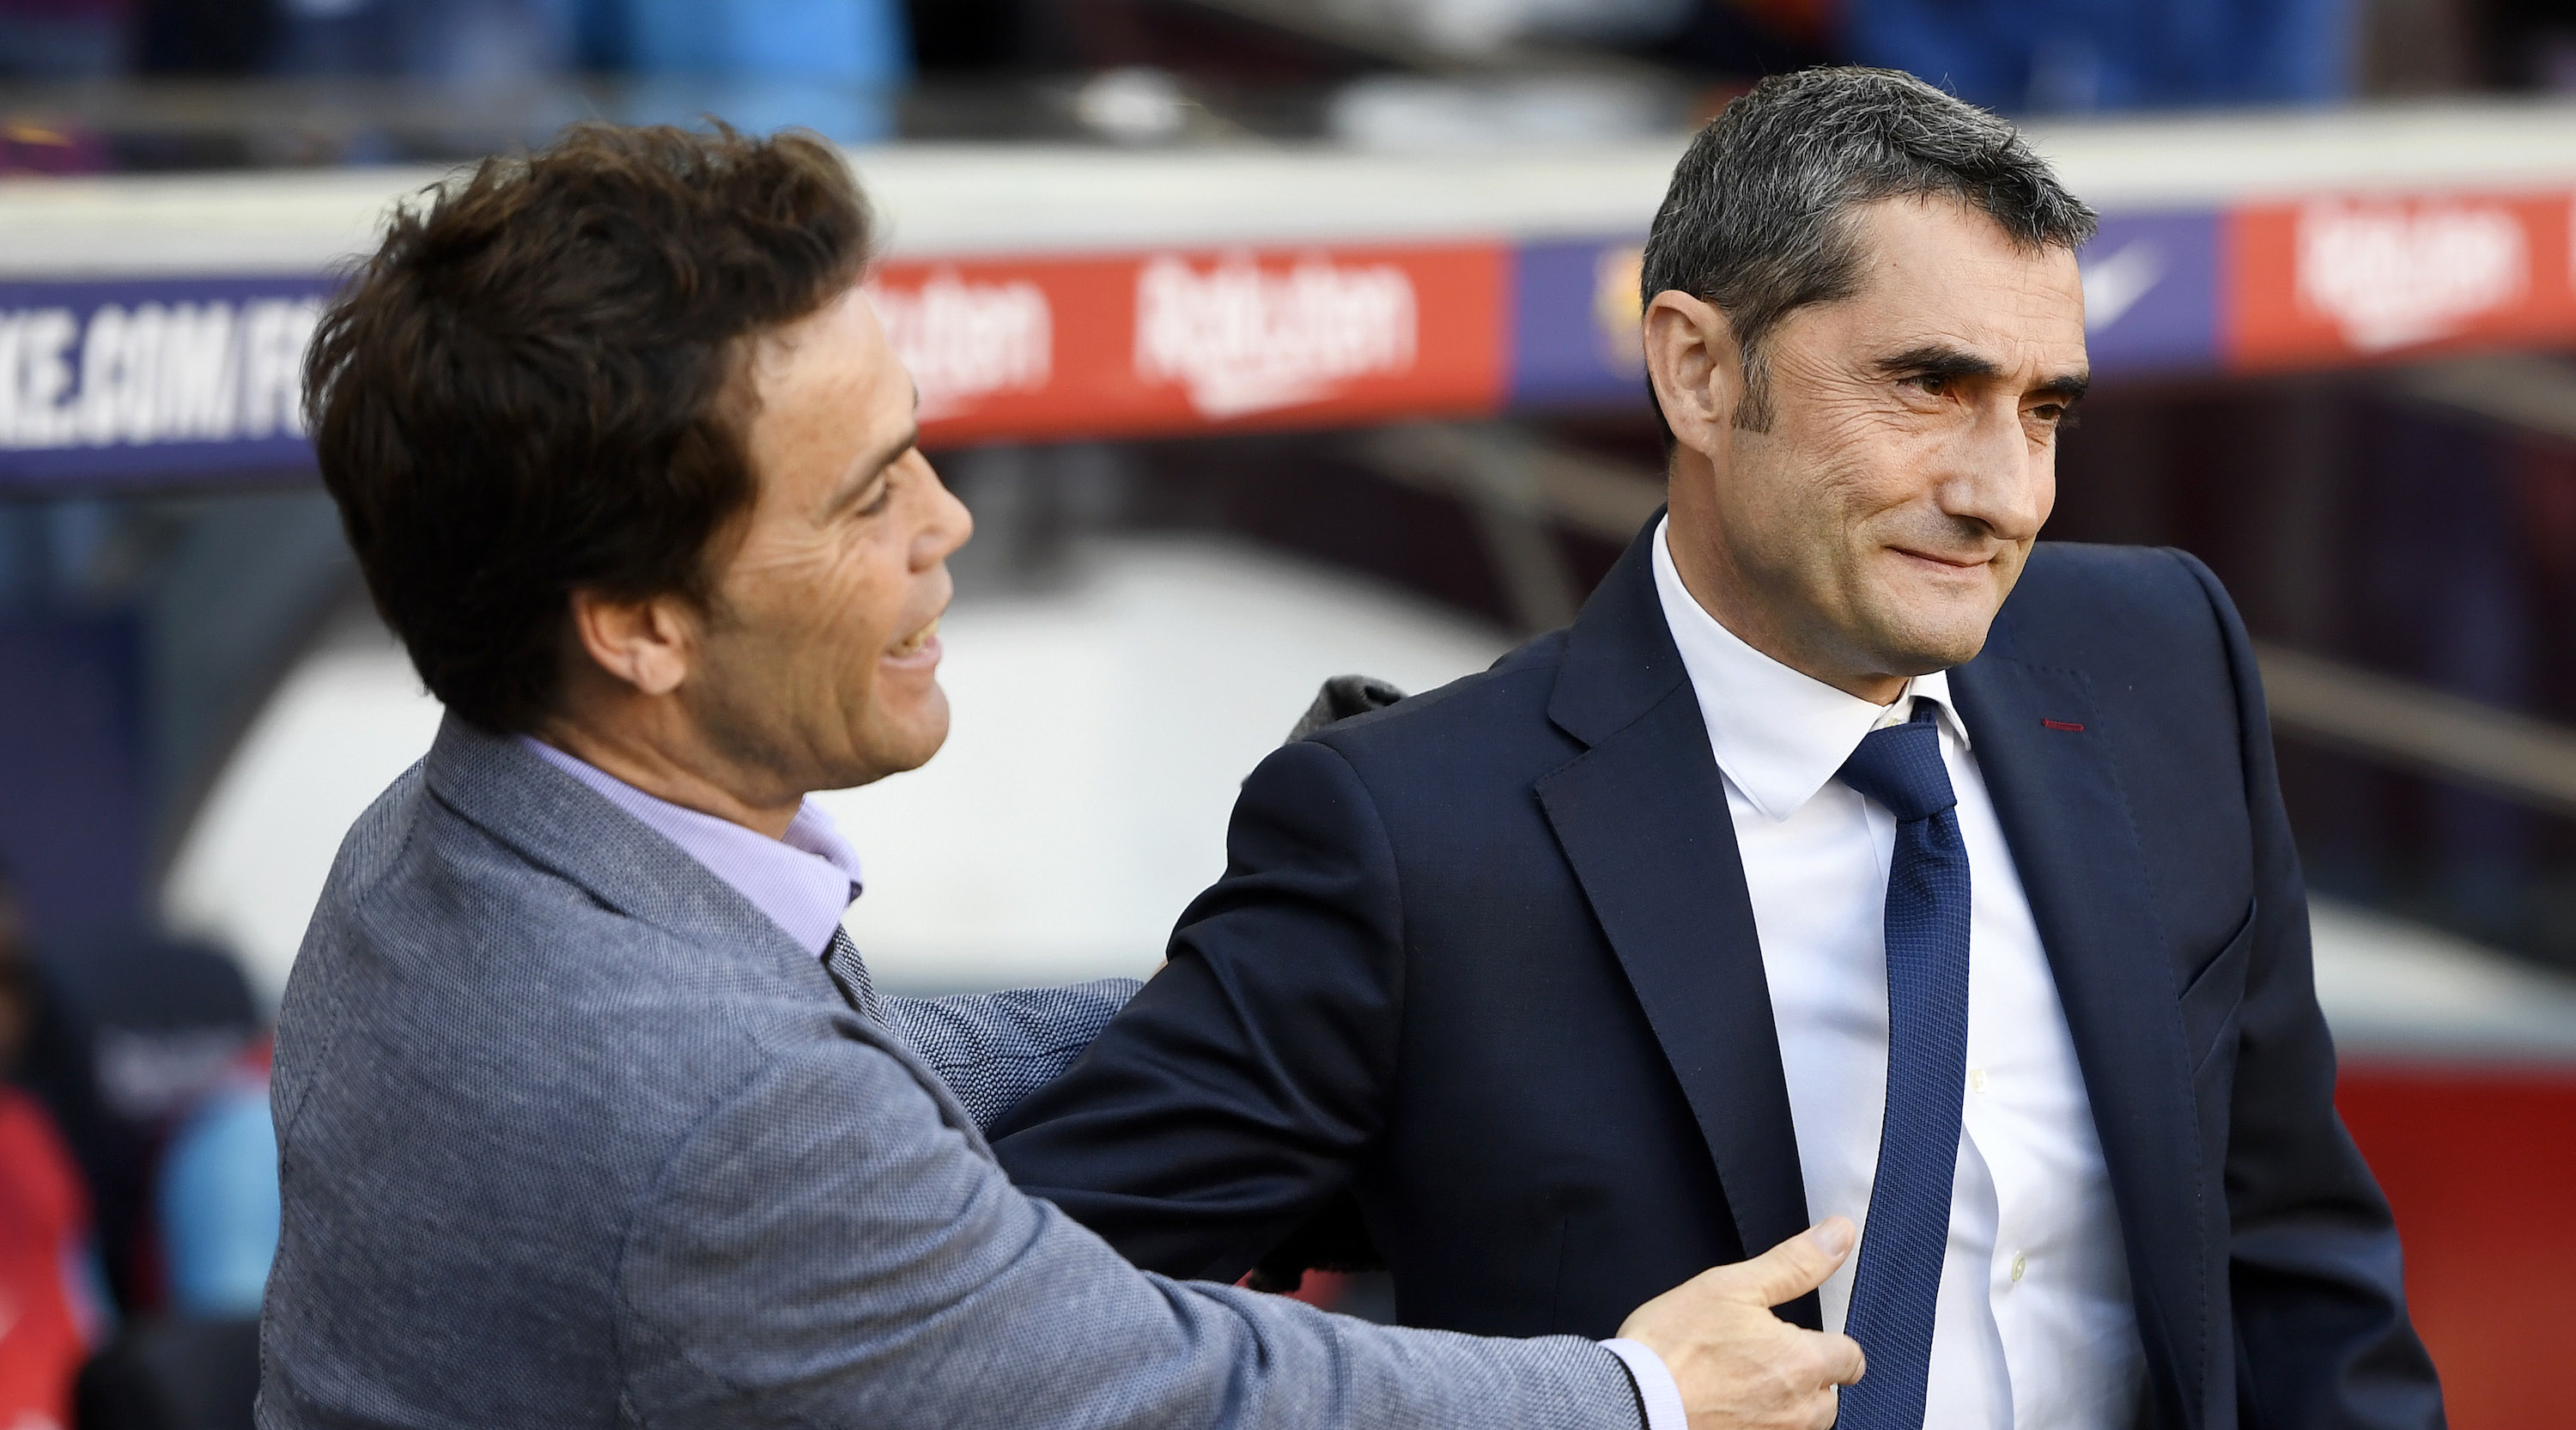 Joan Sicilia, Manager of of RCD Espanyol is greeted by Ernesto Valverde, Manager of Barcelona prior to the La Liga match between FC Barcelona and RCD Espanyol at Camp Nou on March 30, 2019 in Barcelona, Spain. (Photo by Alex Caparros/Getty Images)